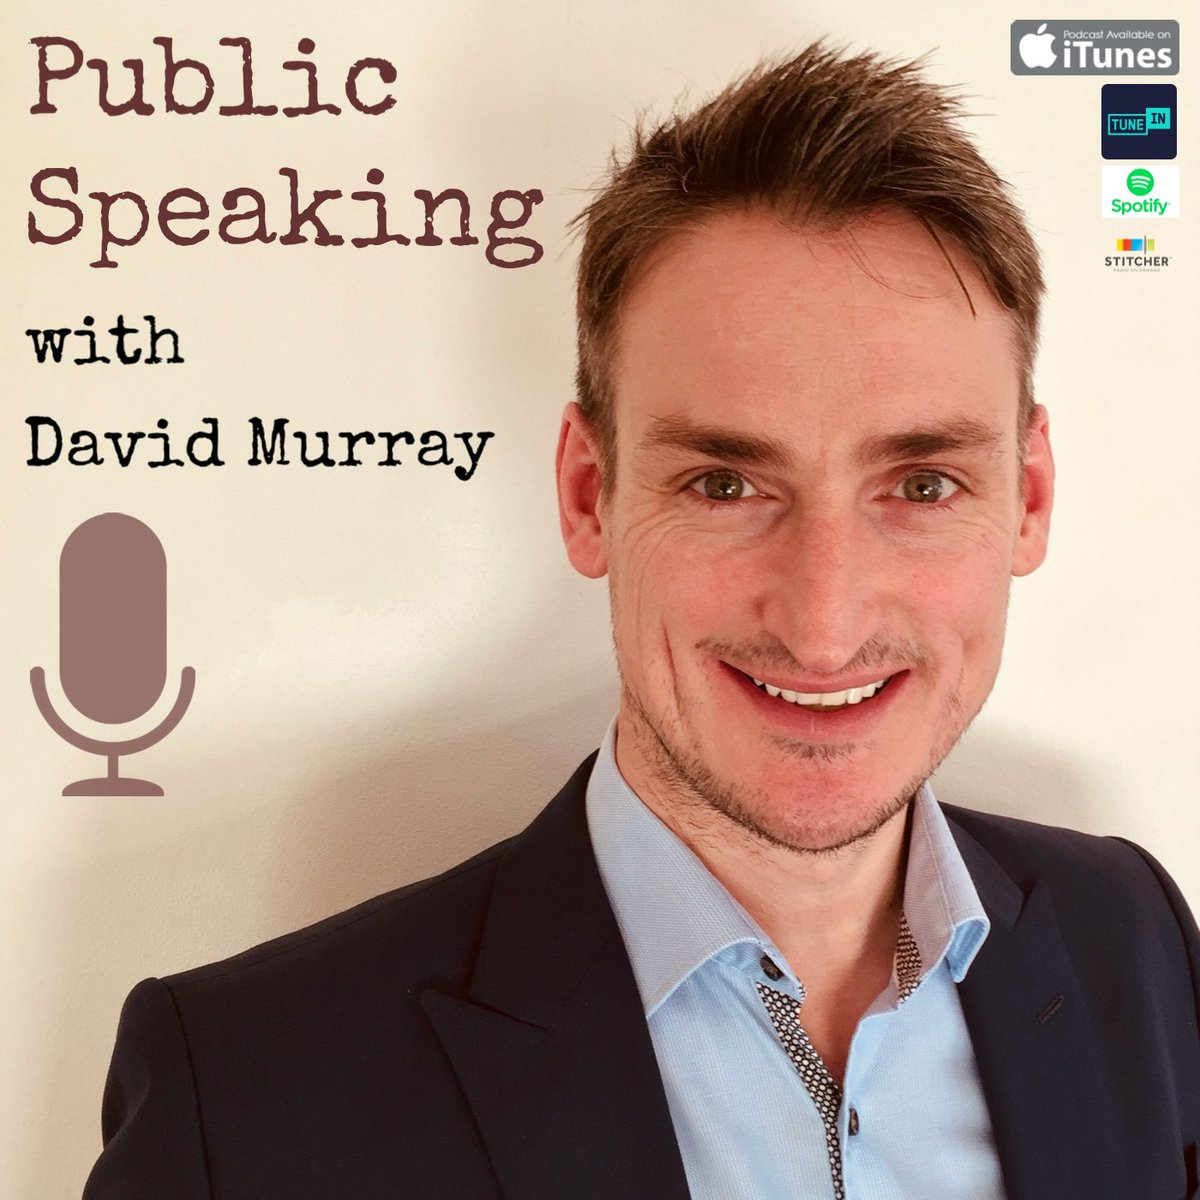 Delivering a speech or presentation this week? Share your message with confidence and flair by listening to the #Publicspeaking with David Murray podcast.  An open posture can make you look & feel confident! http://ow.ly/wDt050yziwM  #communicatewithconfidence #presentationskillspic.twitter.com/3v2T46L9vv